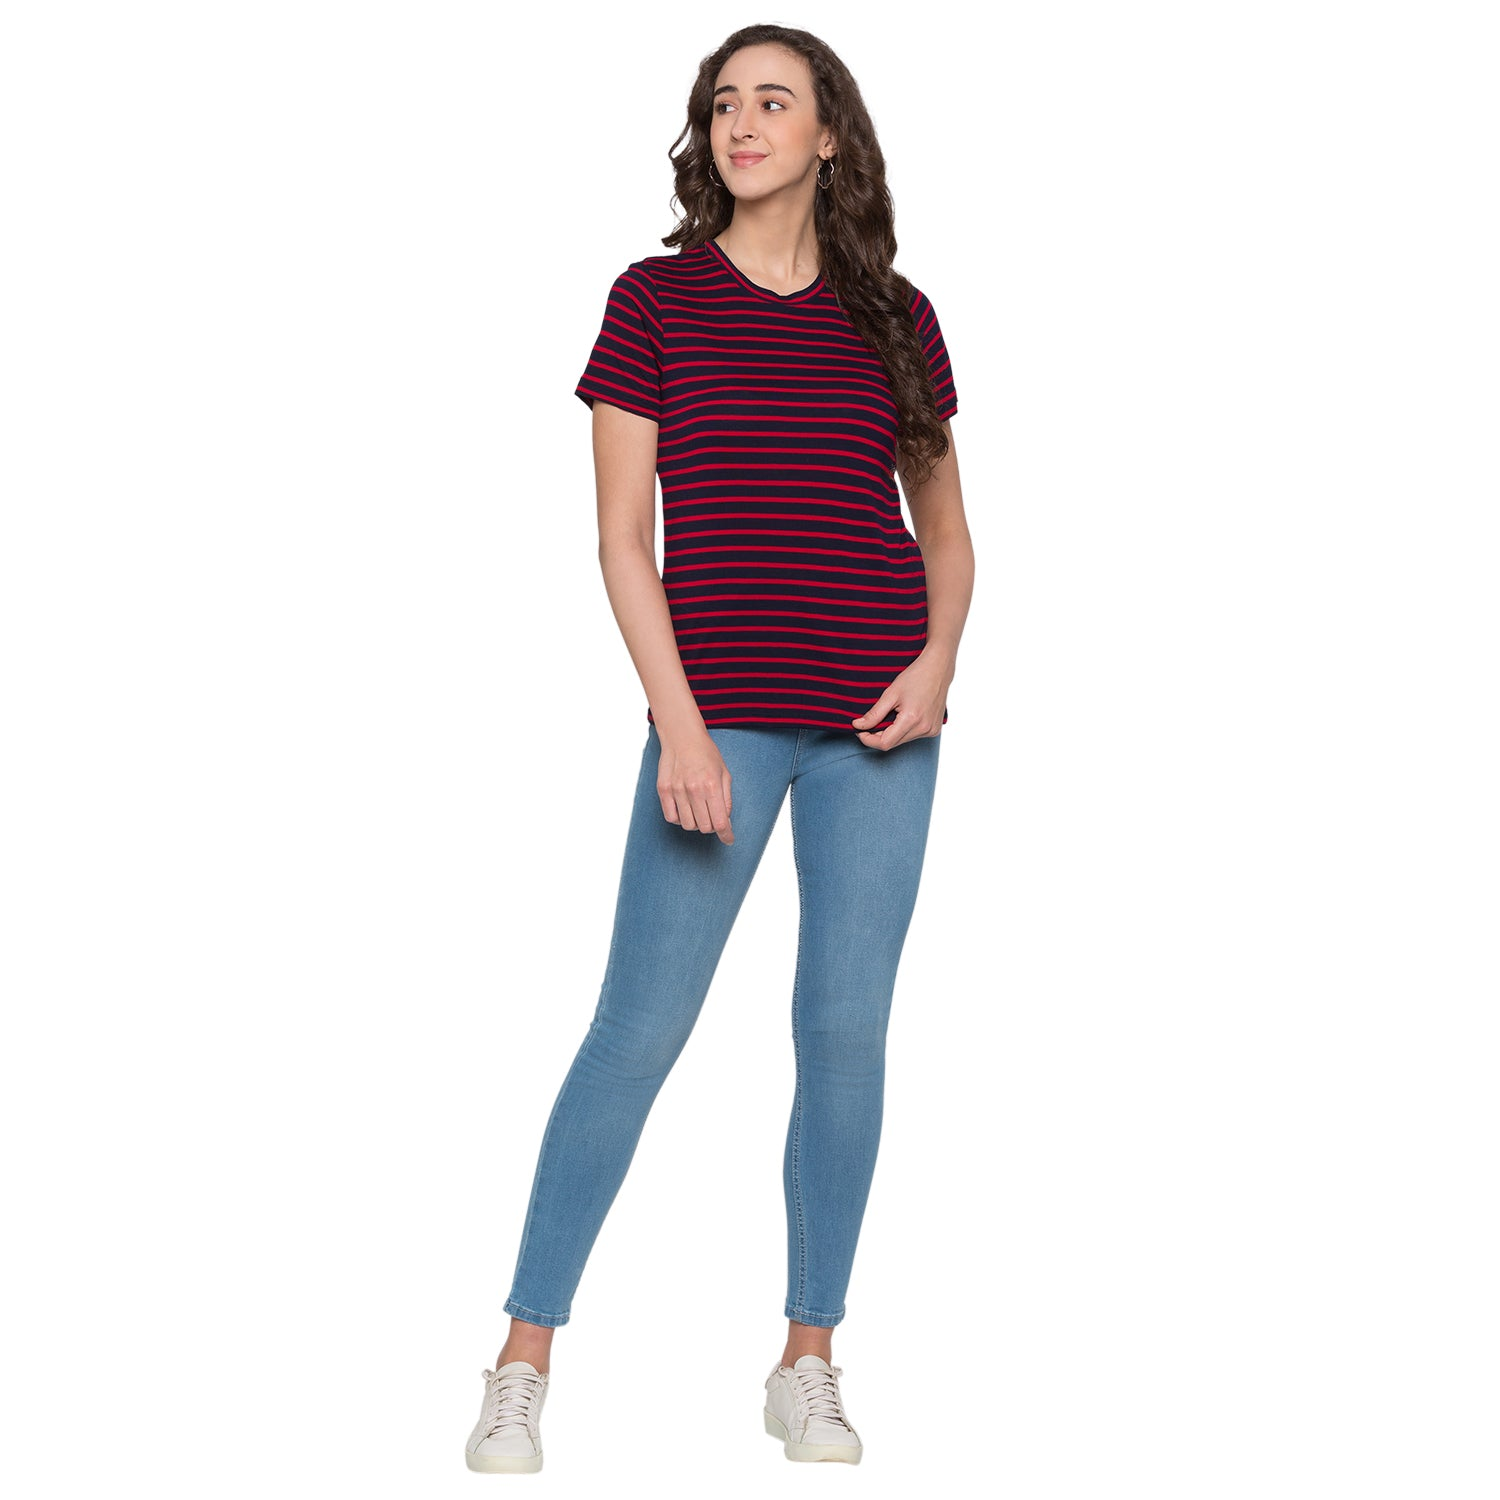 Globus Red & Navy Blue Striped Top4